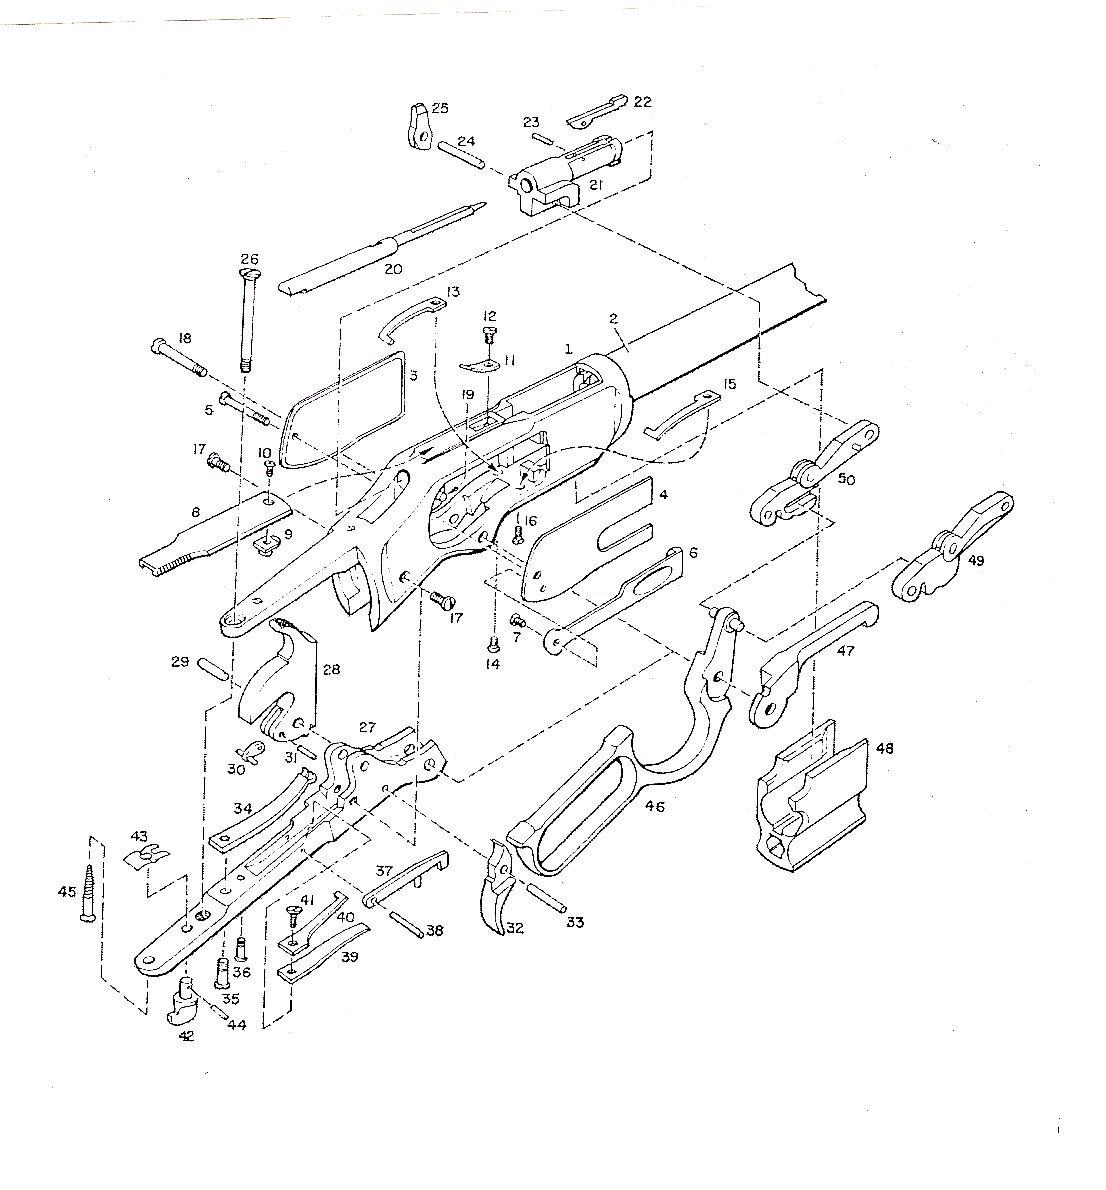 Colt 45 Revolver Drawing At Free For Personal Use 1911 Parts Diagram 1106x1190 Aa Action Gun Cowboy Replica